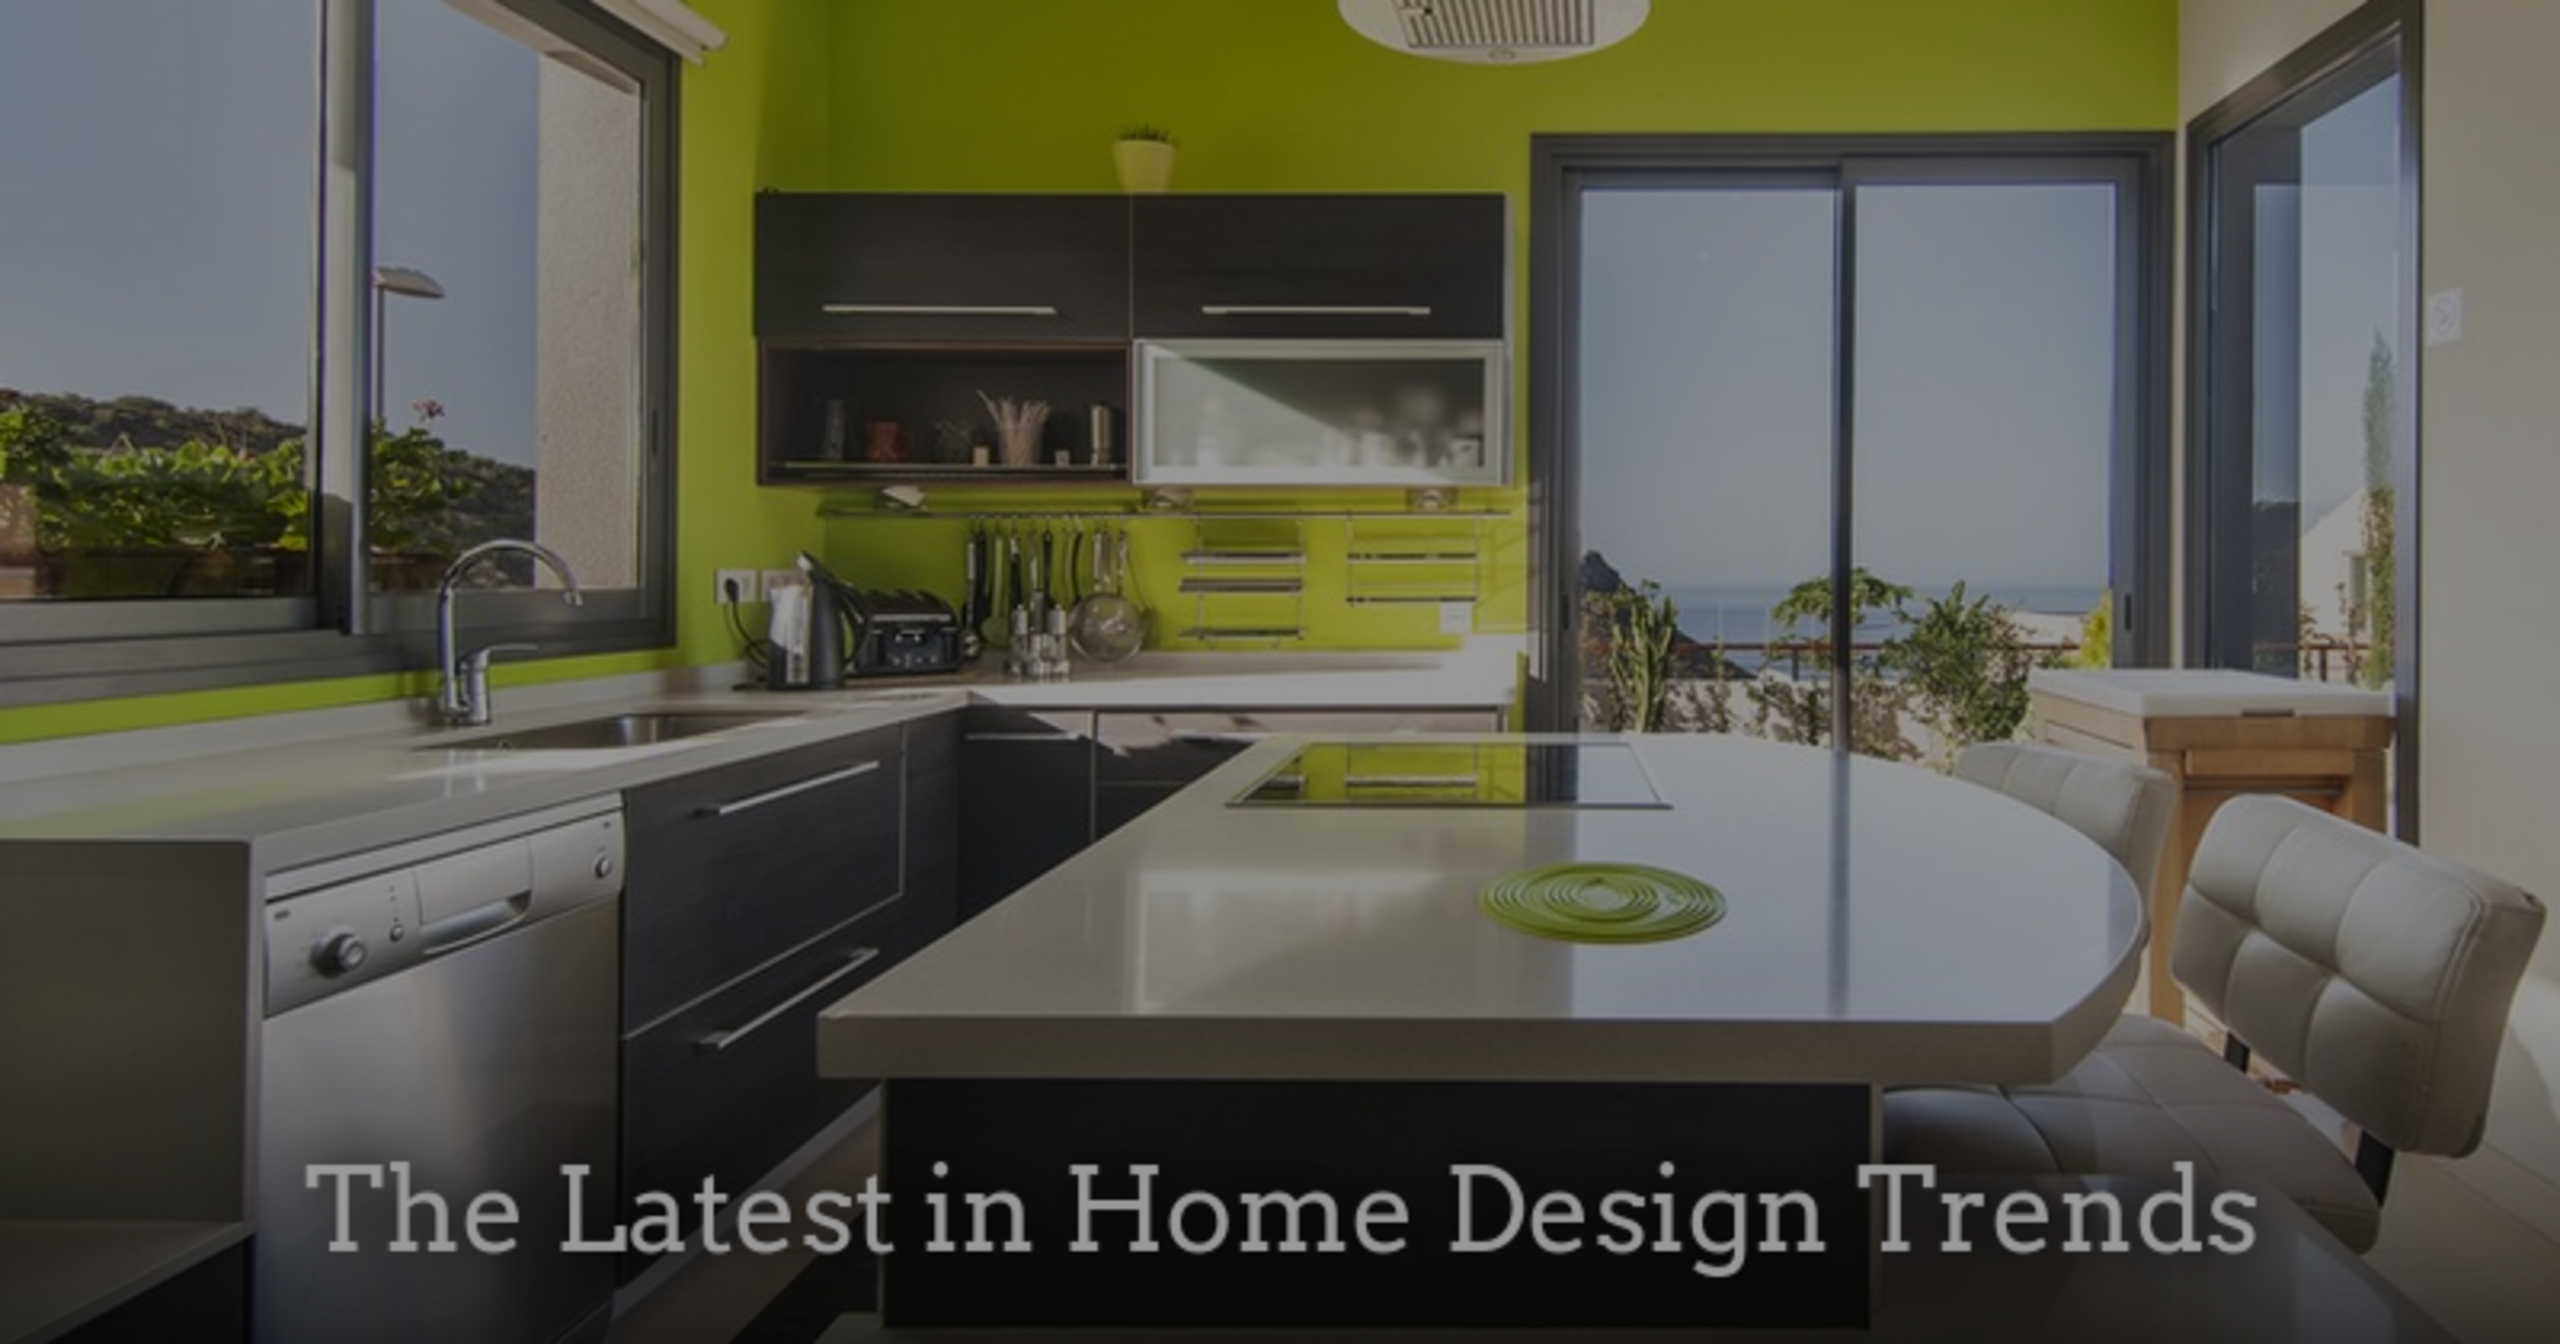 The Latest in Home Design Trends